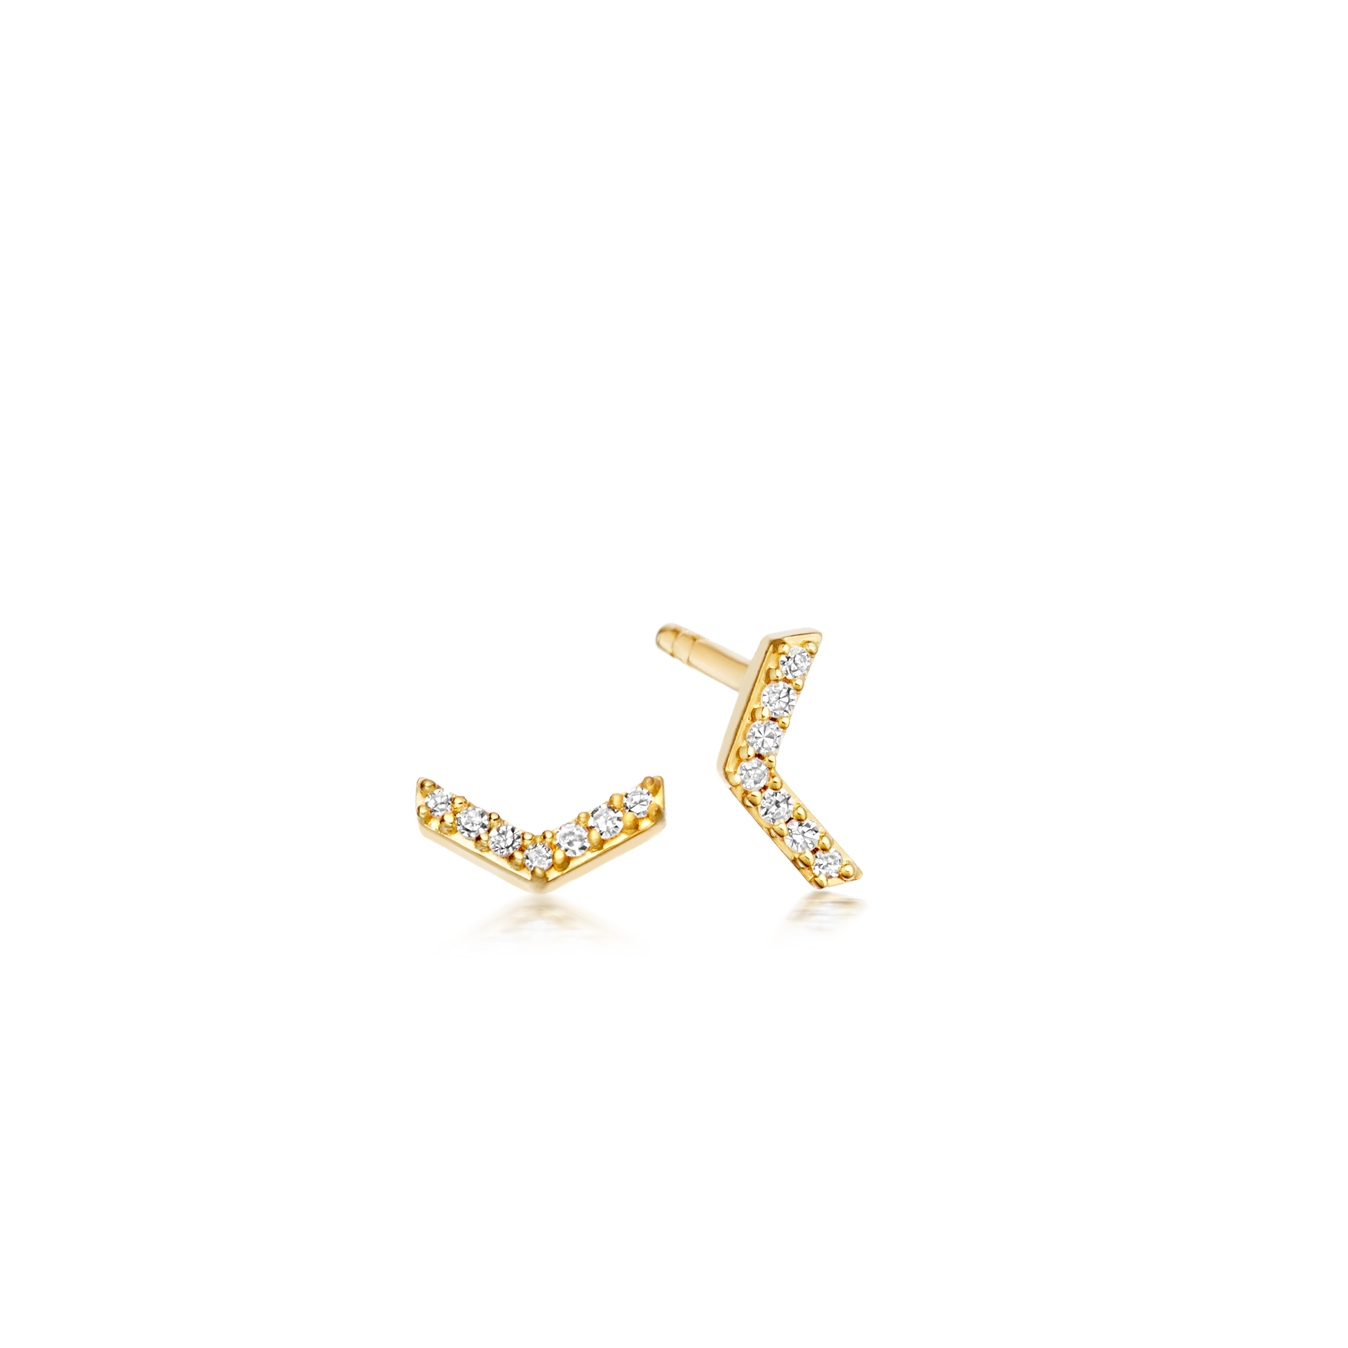 Varro Honeycomb Diamond Stud Earrings